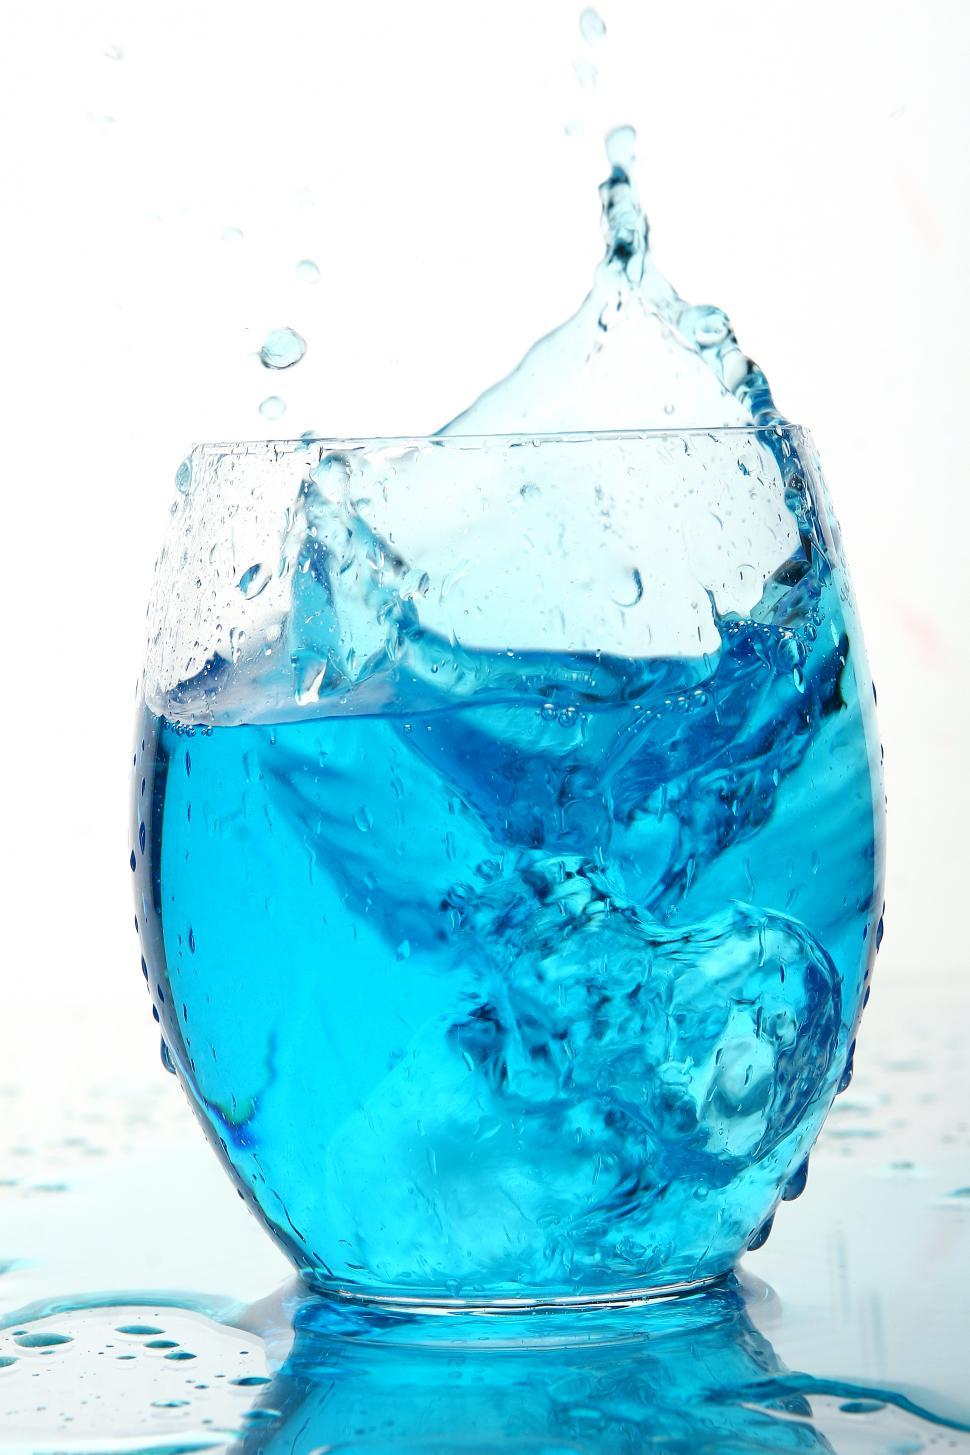 Download Free Stock Photo of Ice splashes into blue beverage